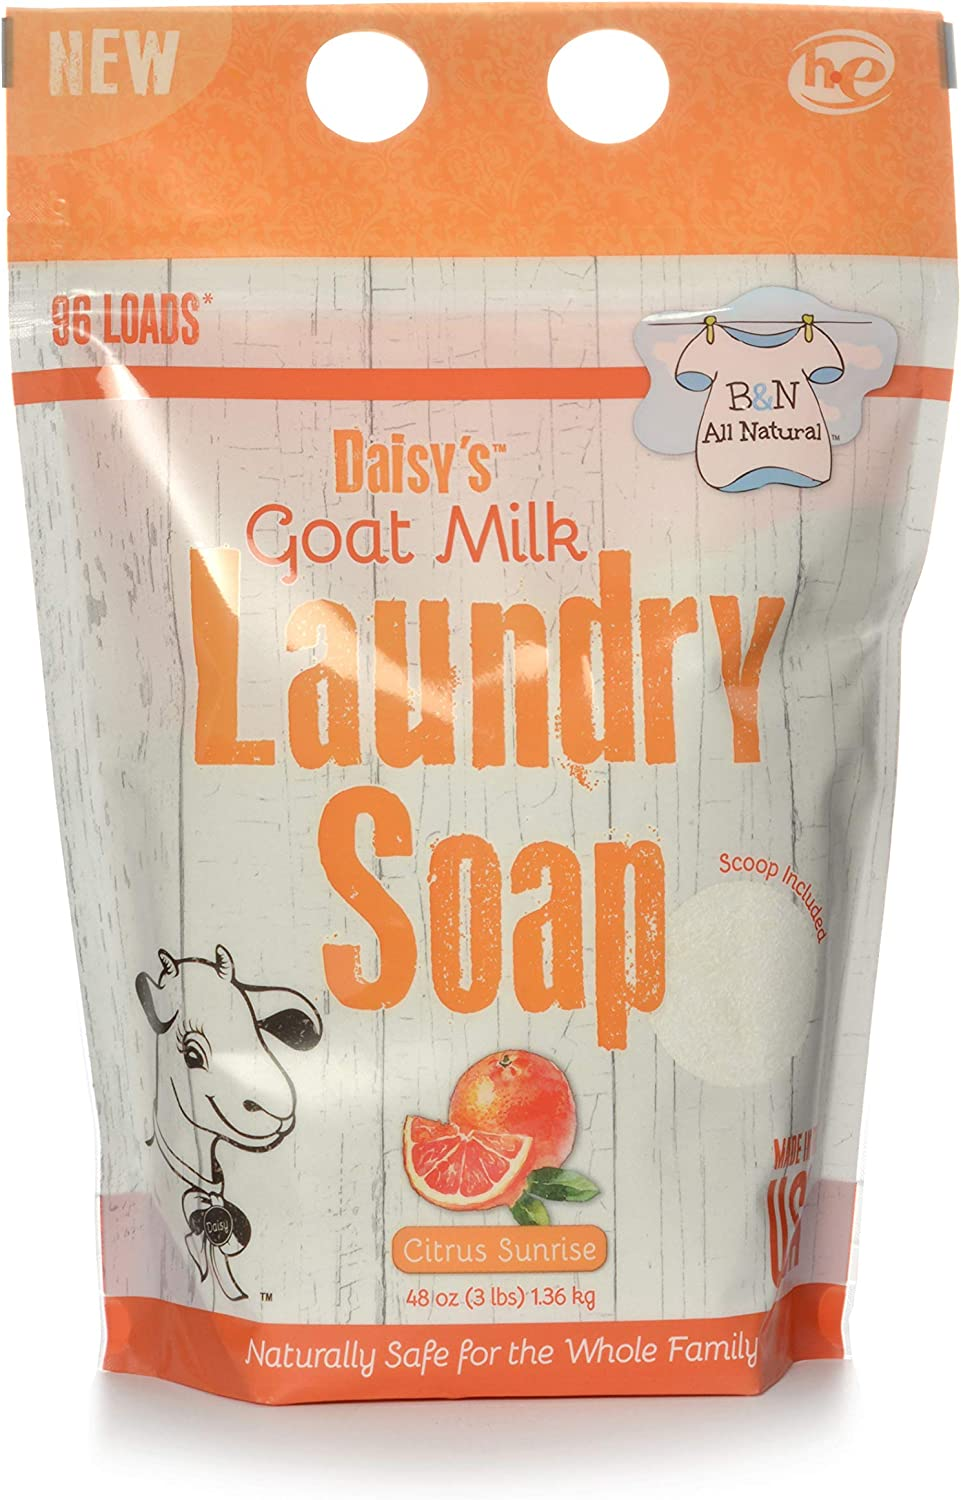 Brooke & Nora at Home, Daisy's Goat Milk Laundry Soap, Citrus Sunrise, 96 Loads